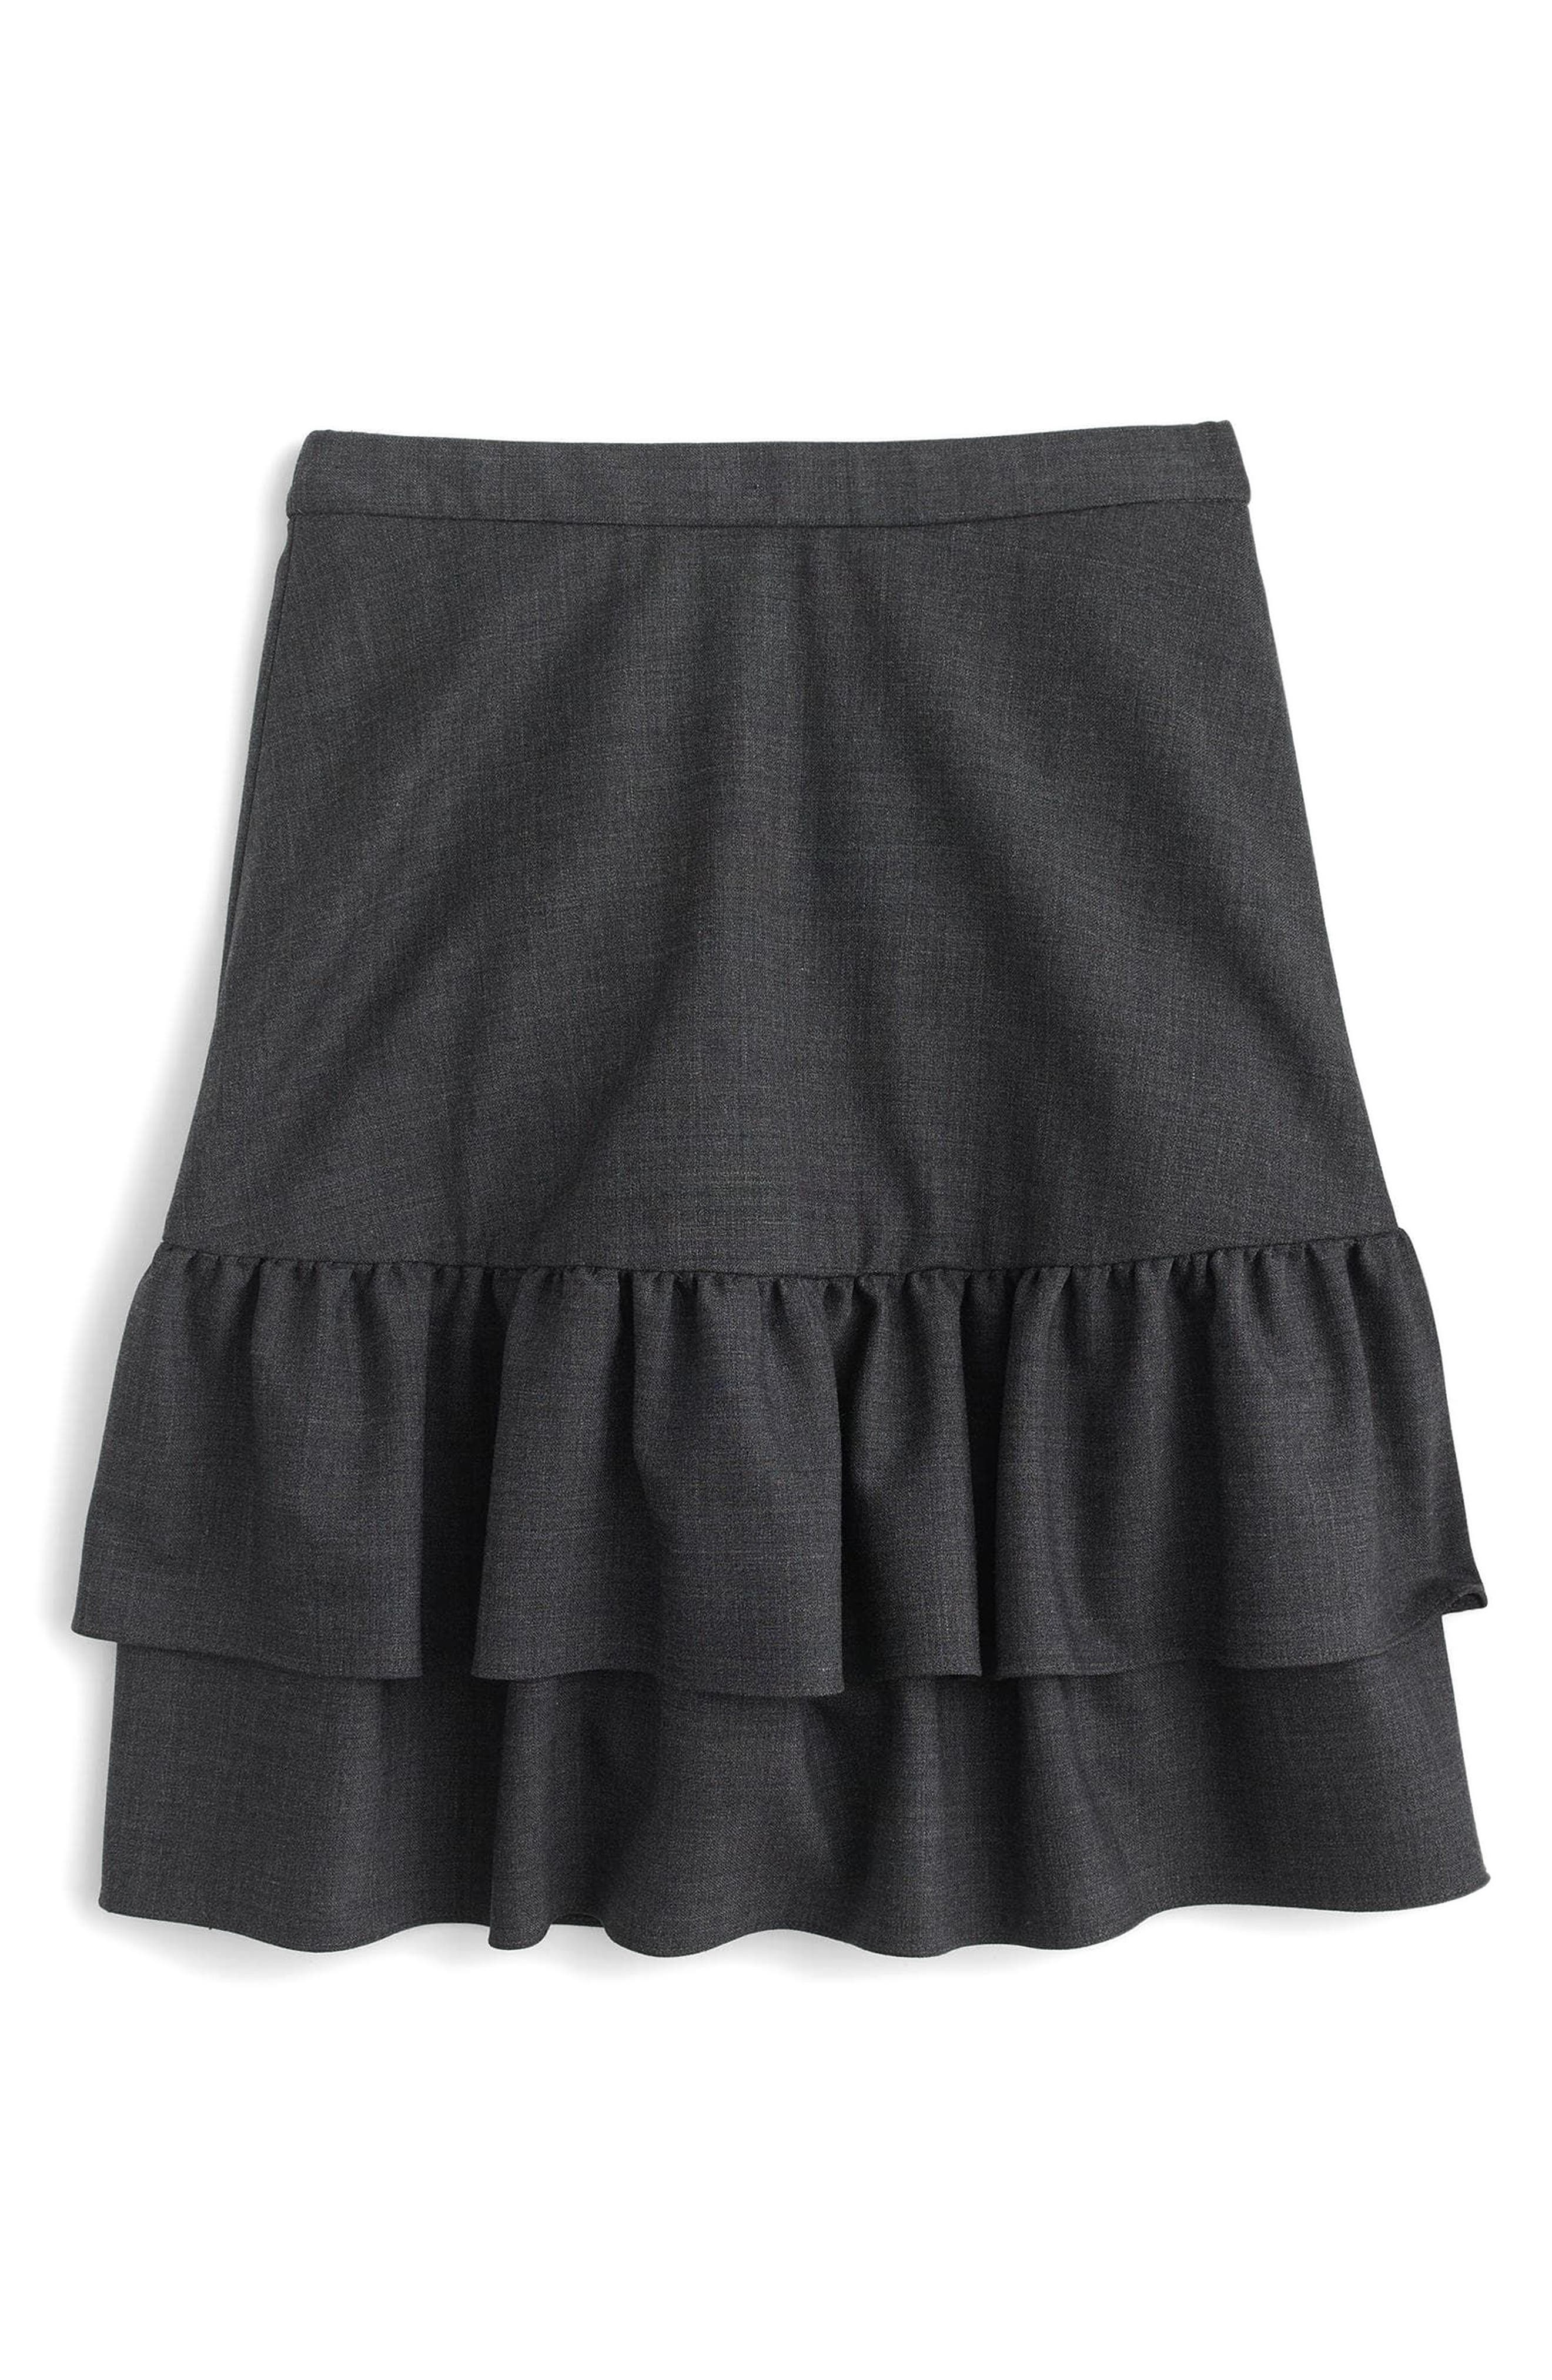 Wool Flannel Ruffle Skirt,                             Alternate thumbnail 4, color,                             020